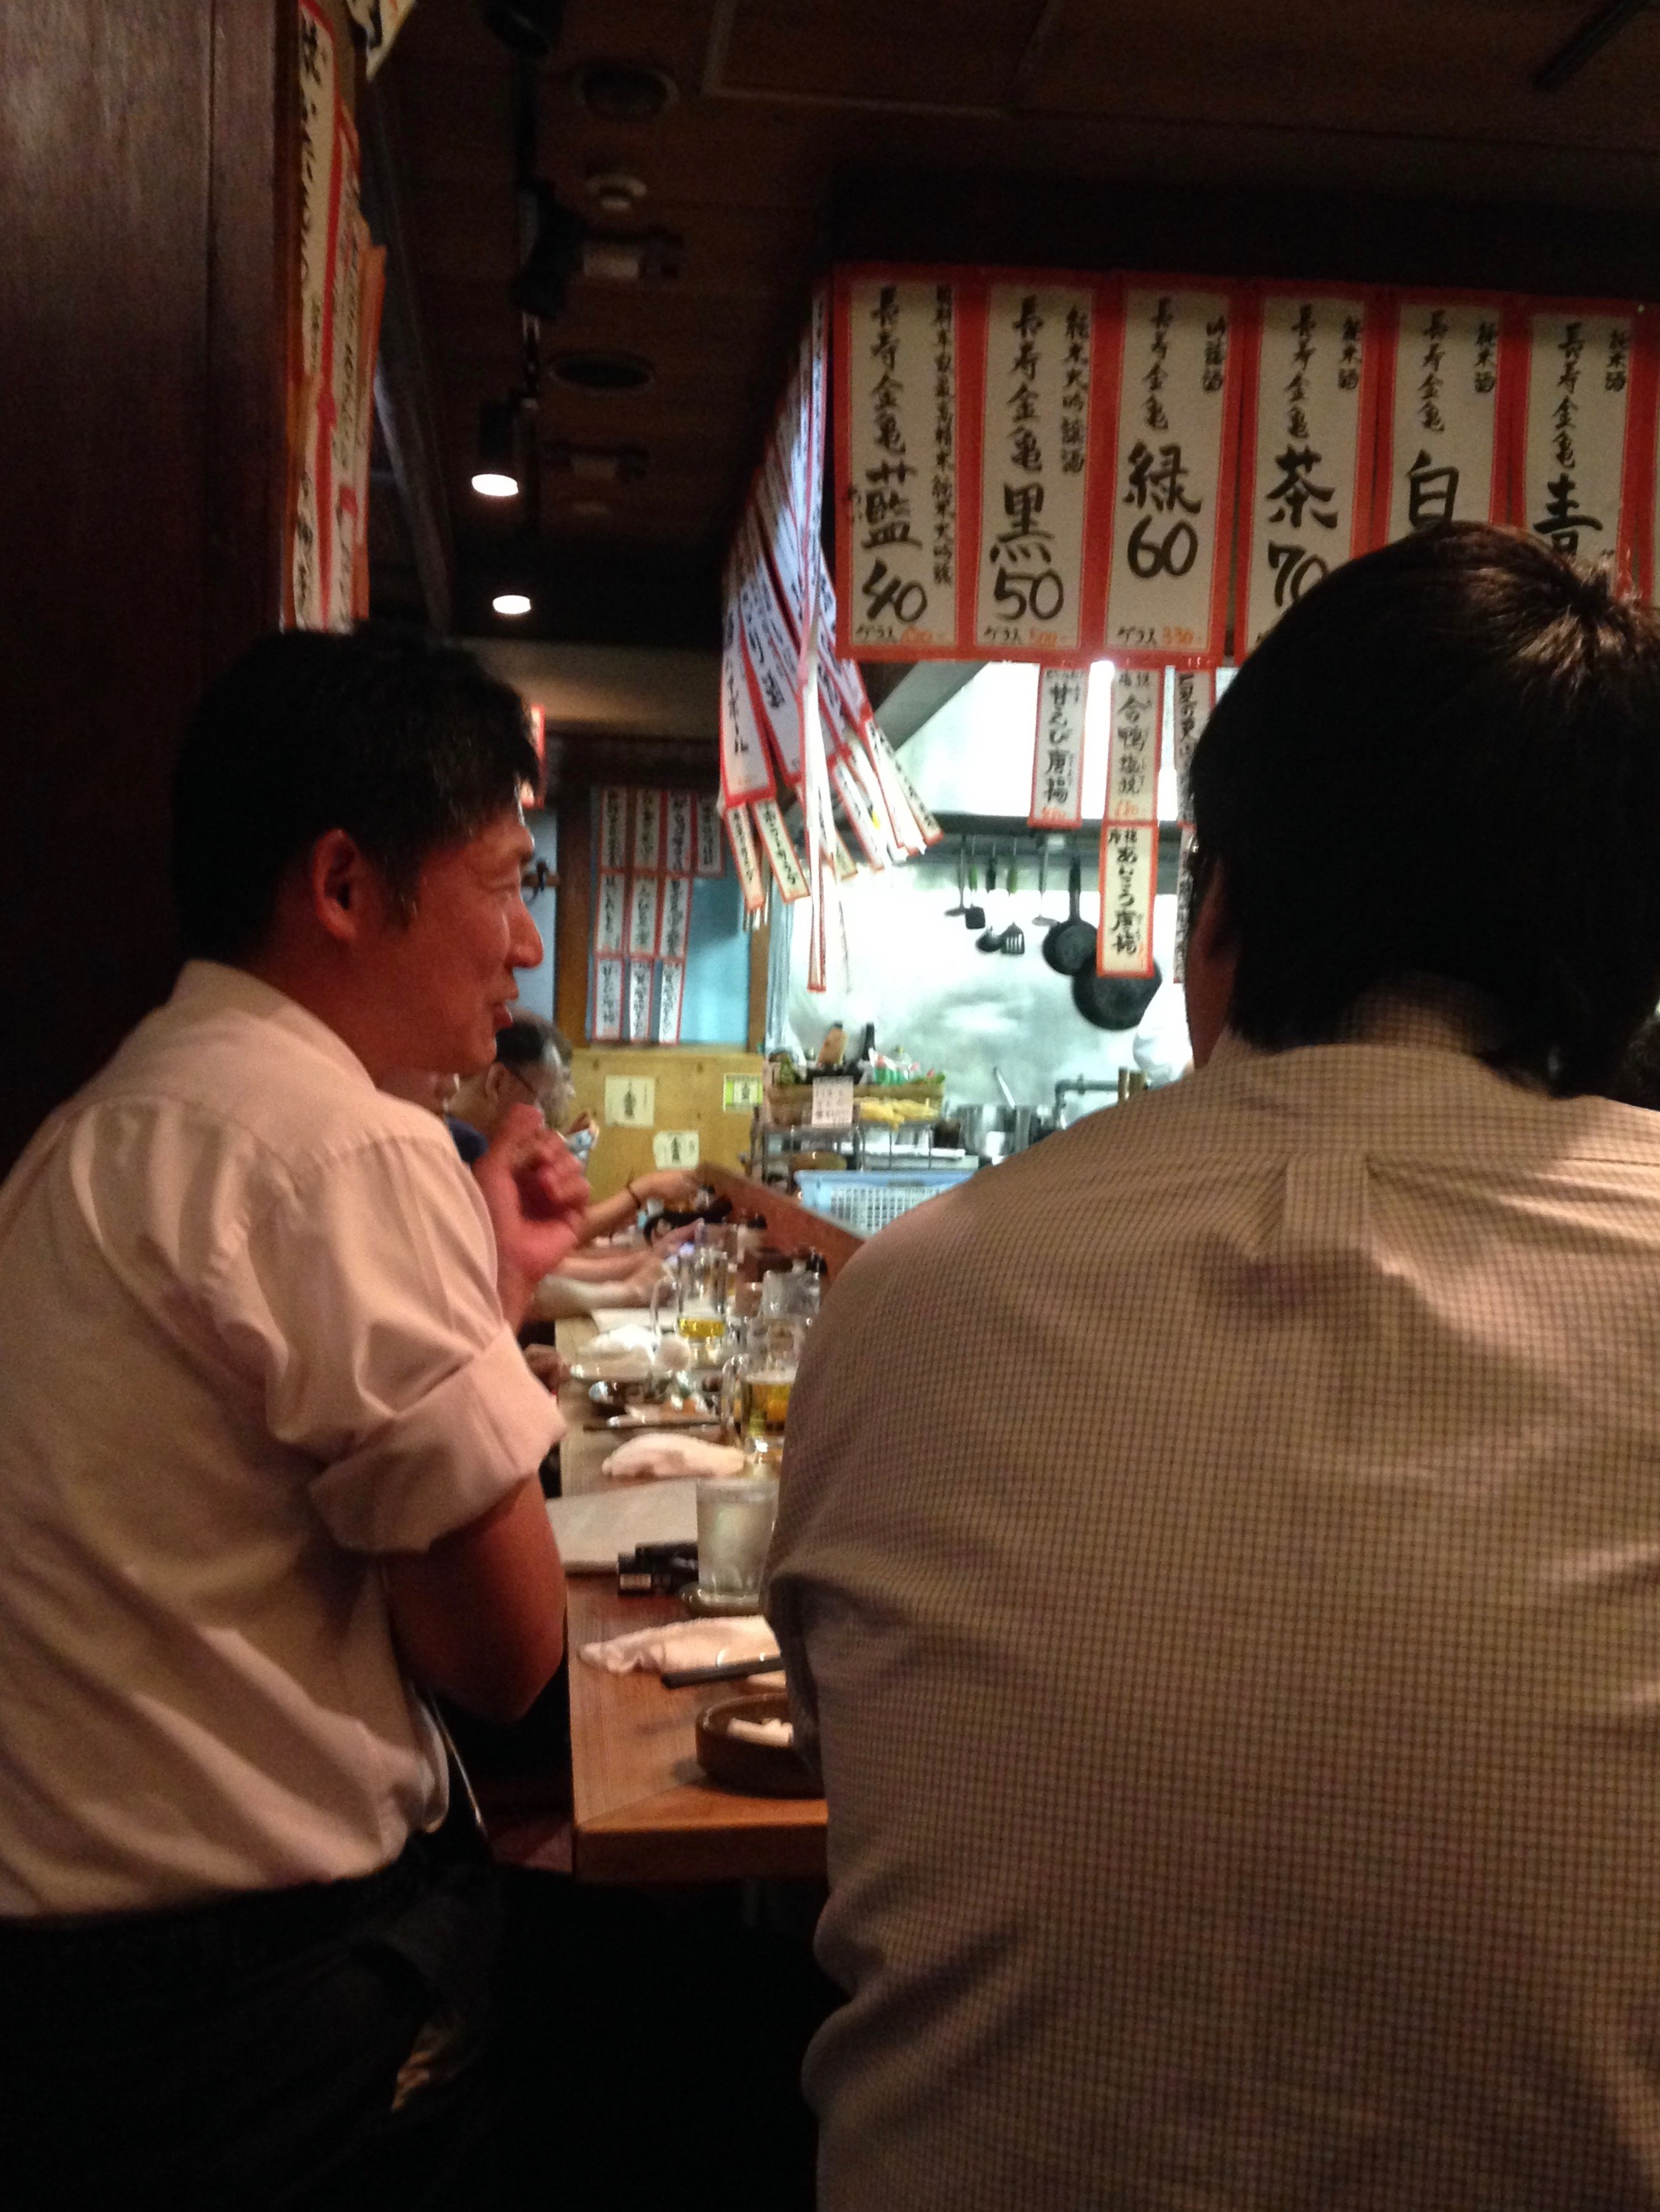 Kyoto is heaven for ramen lovers, or food lovers in general. Or anybody. Go and never come back.